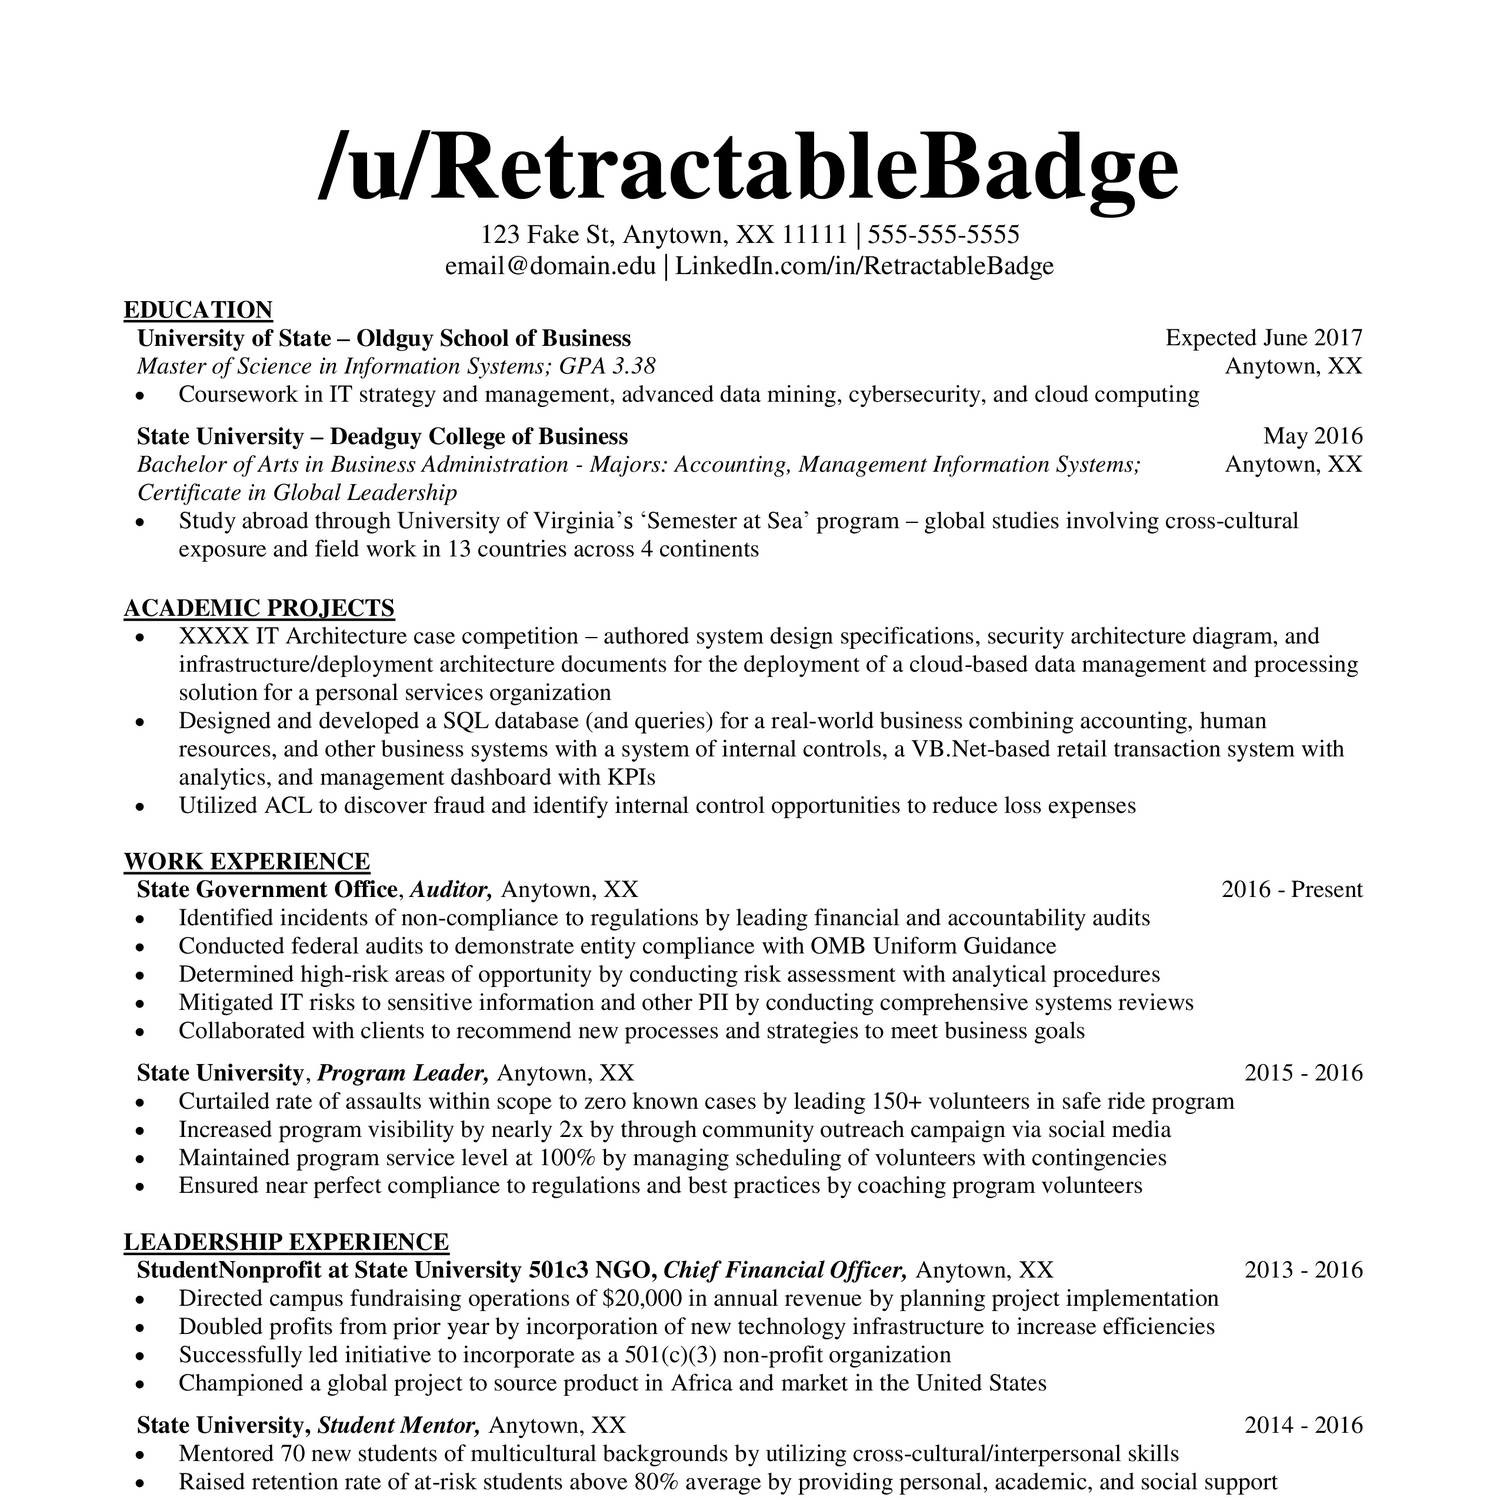 downloader with resume capability mechanical engg